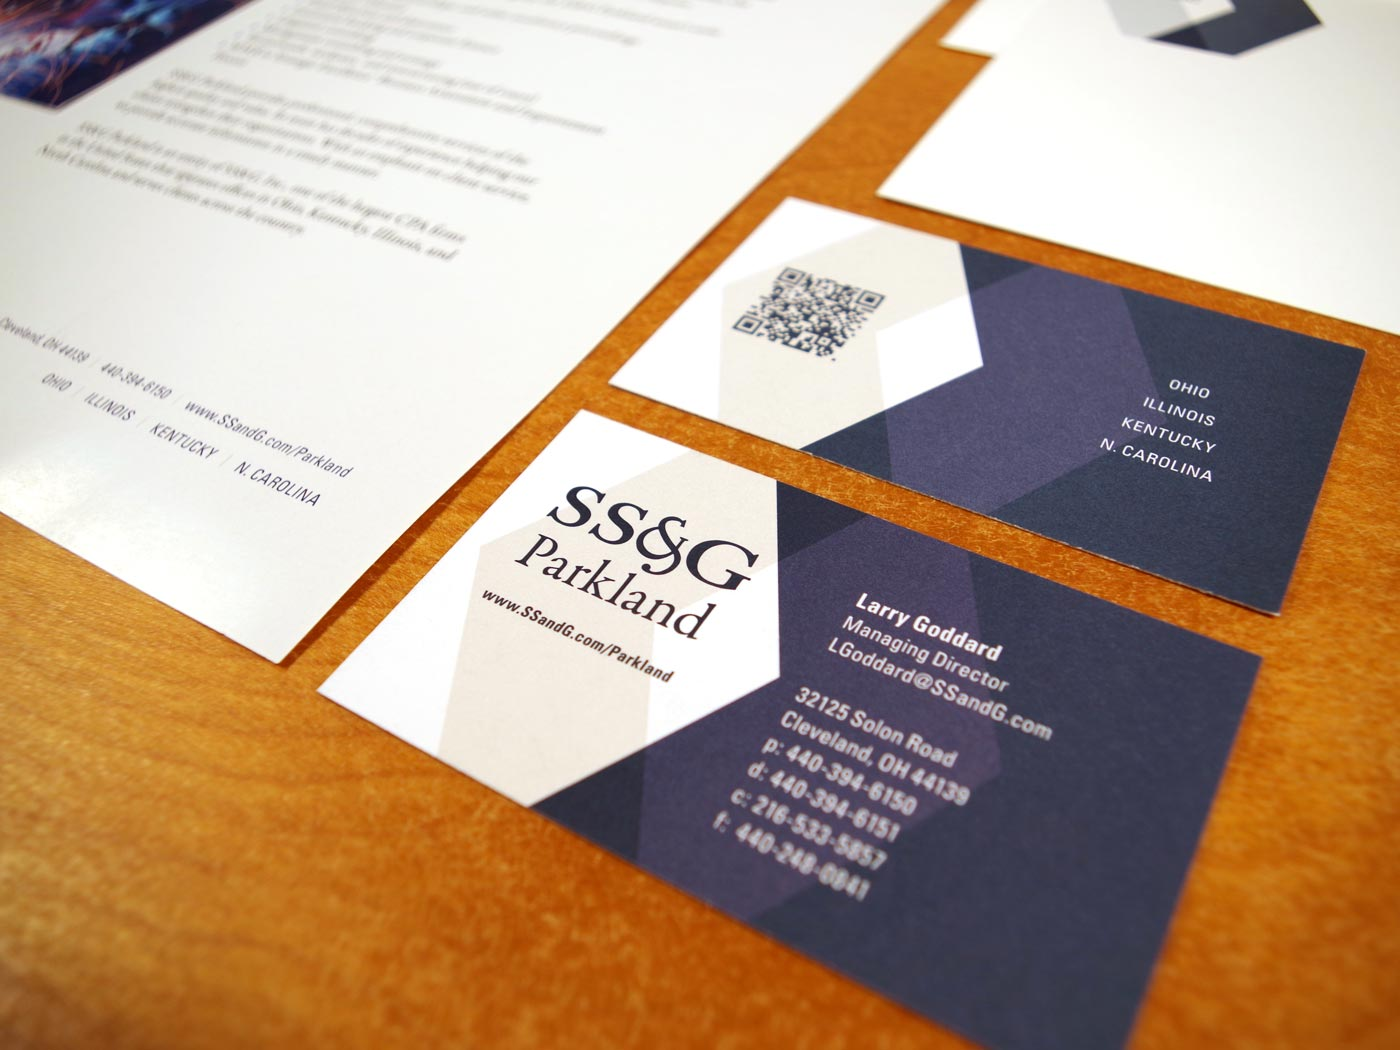 Jesse r ewing dot com ssg materials for firm entities such as ssg parkland consulting were designed to fit within the new branding standards magicingreecefo Images